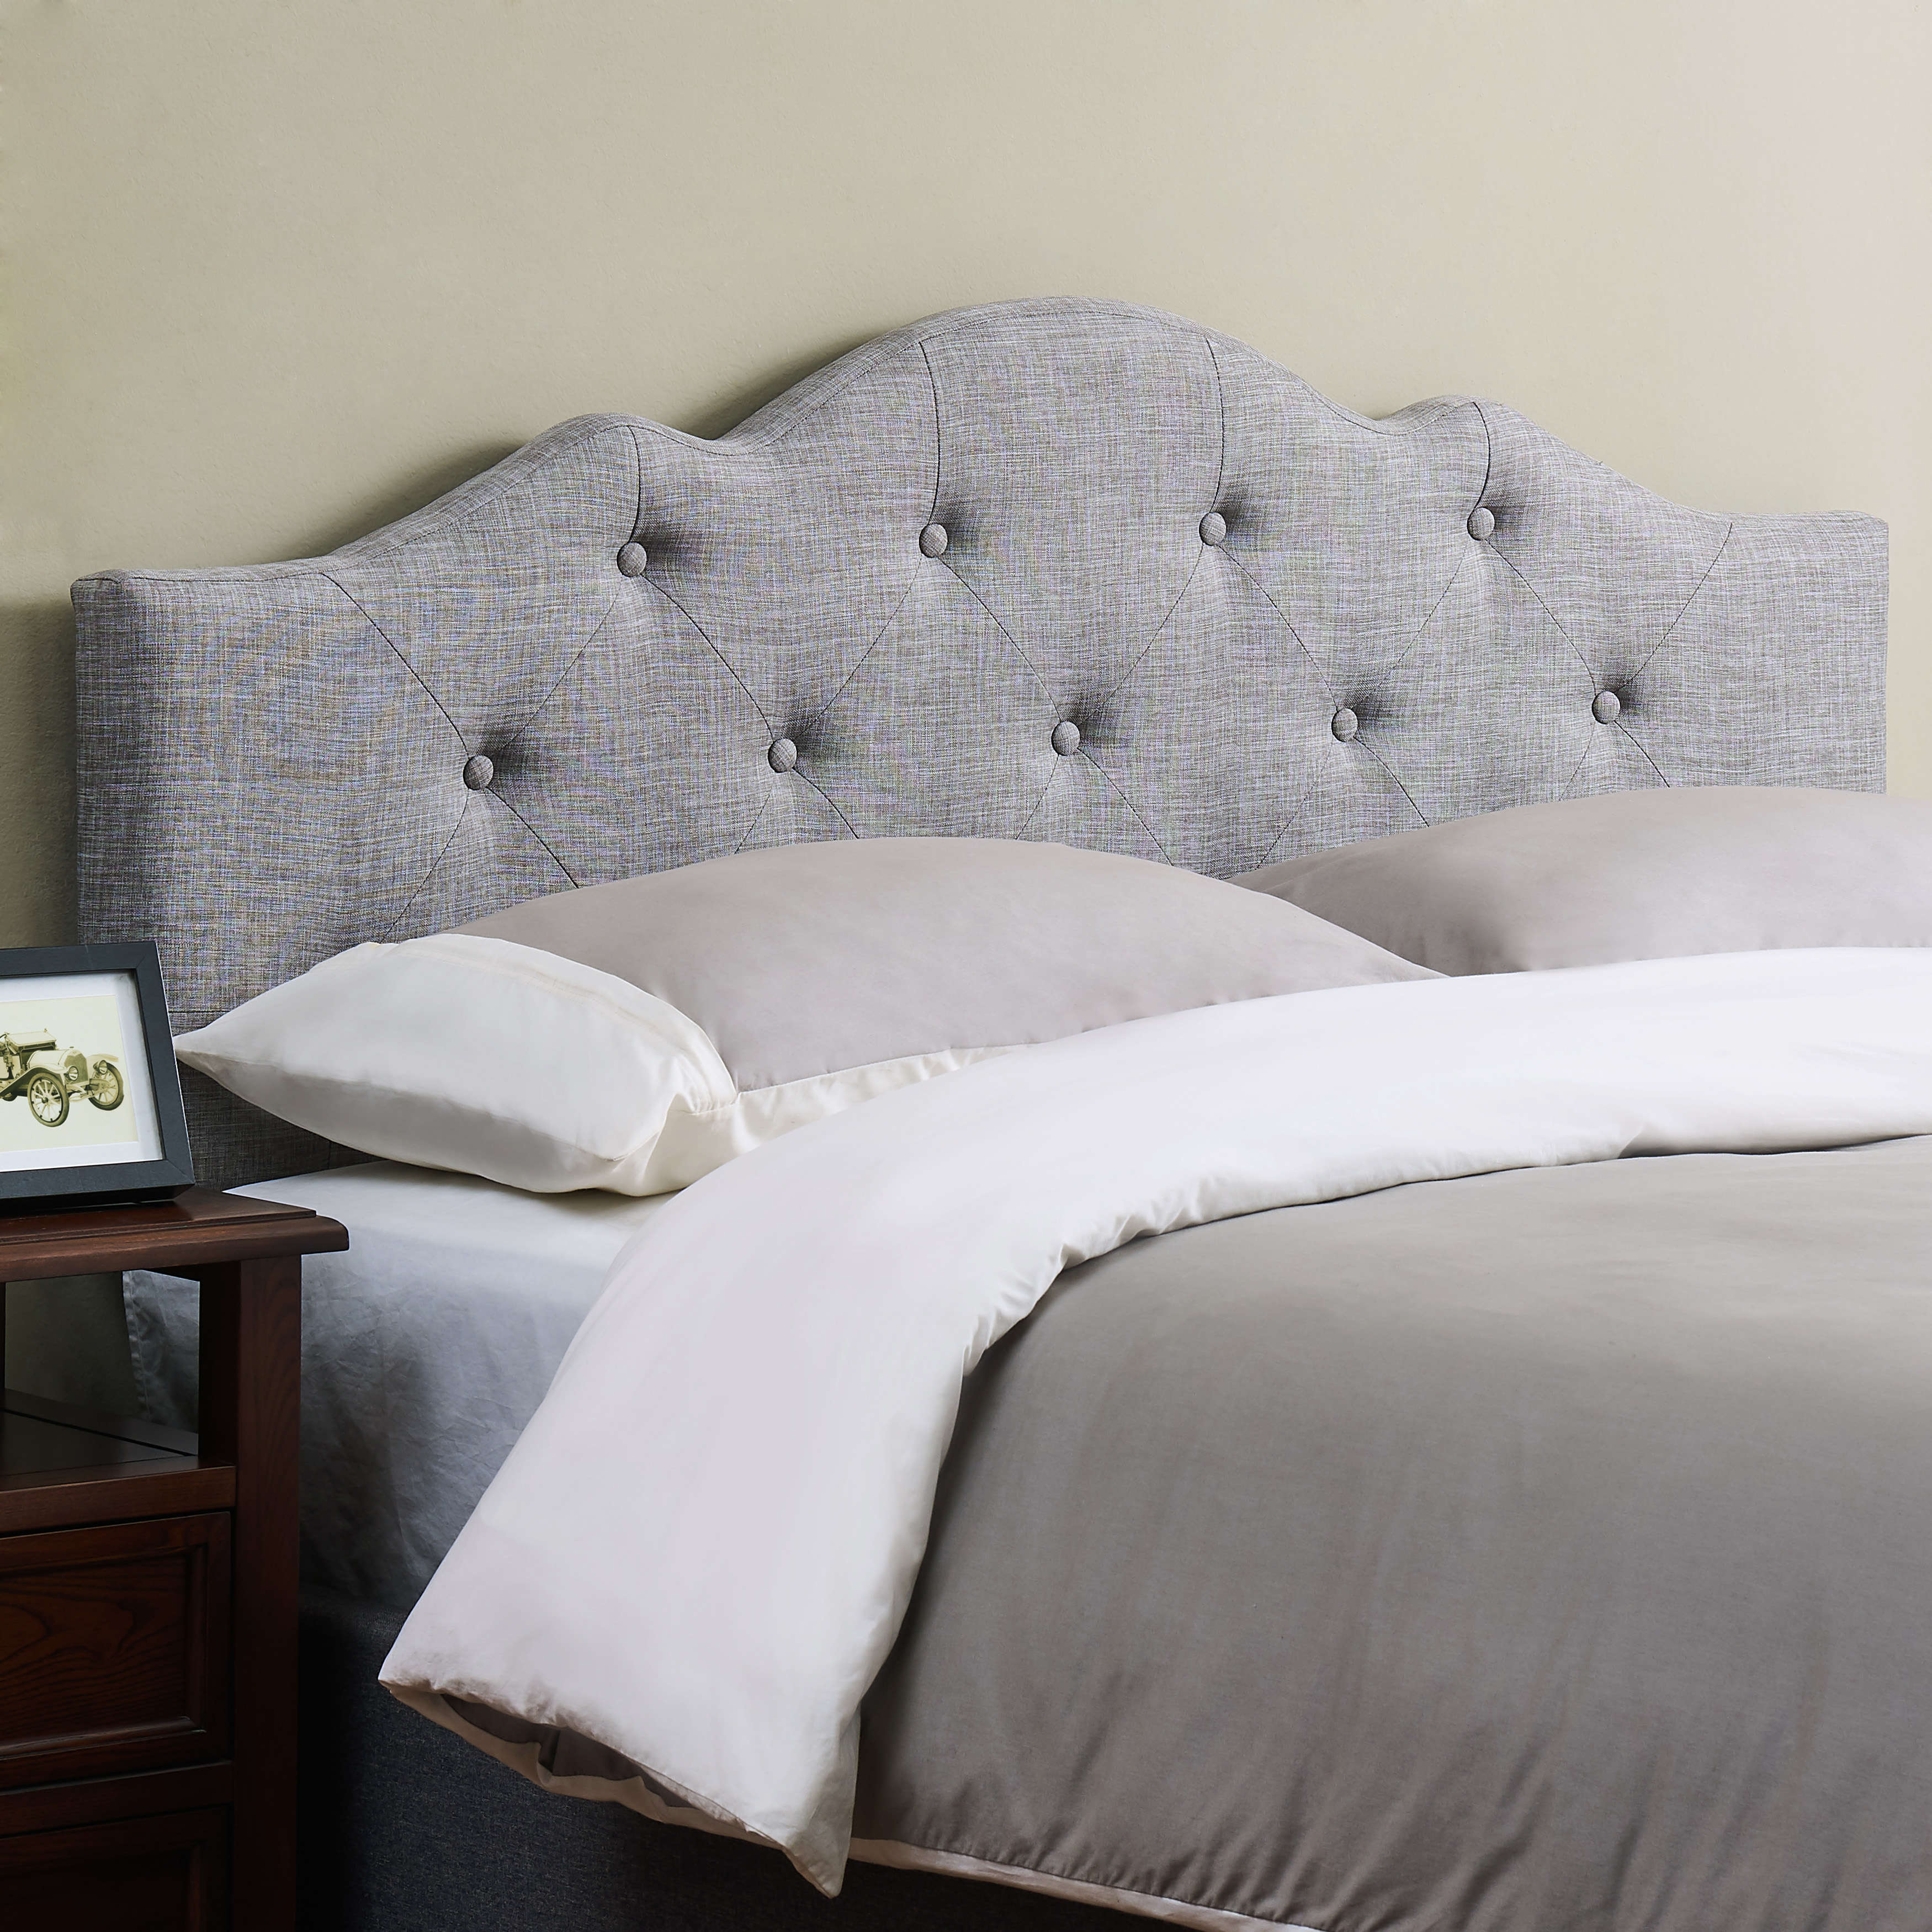 Mainstays Upholstered Tufted Rounded Headboard FullQueen